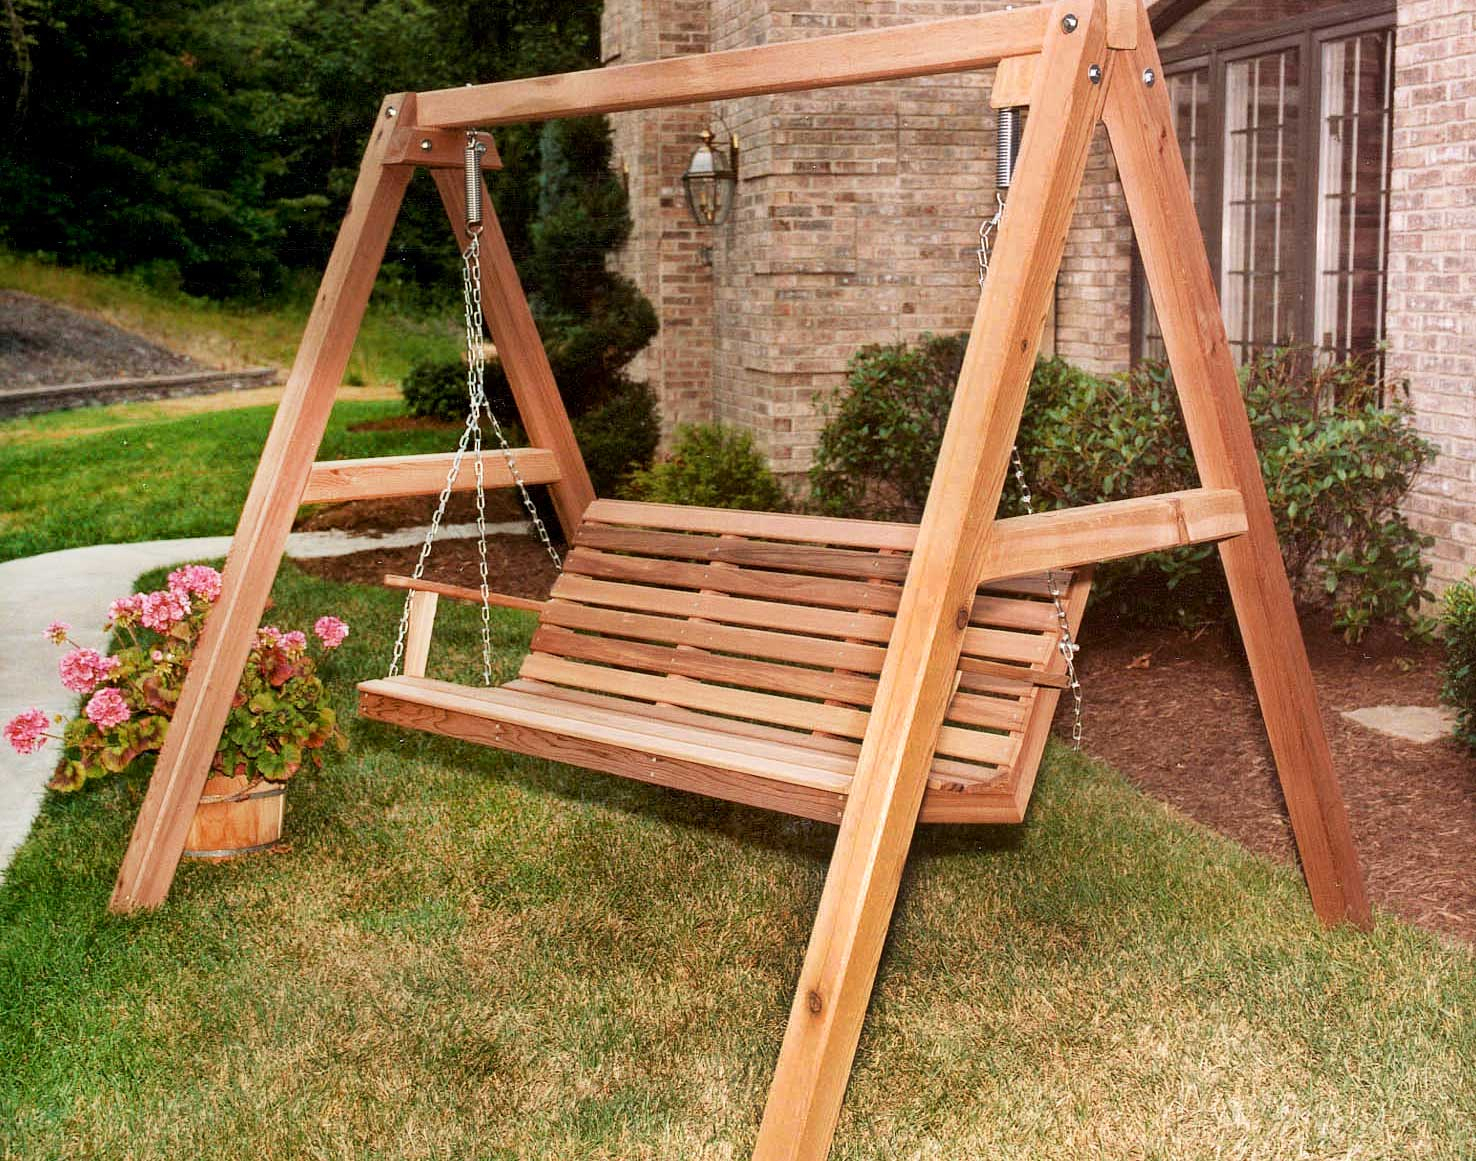 Red Cedar American Classic Porch Swing W/stand Within Porch Swings With Stand (View 2 of 25)